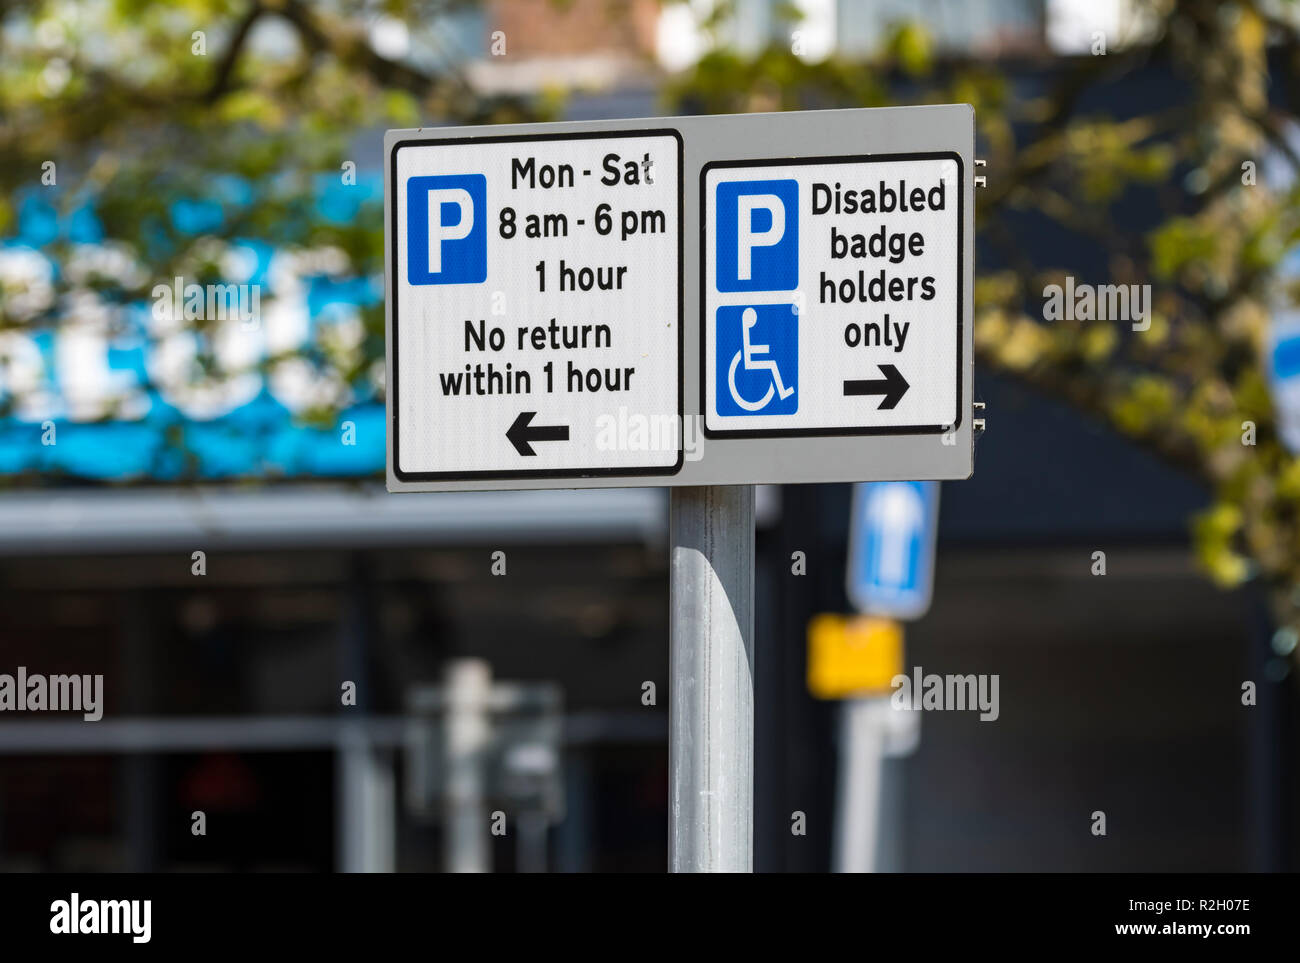 British parking restriction signs. No return within 1 hour and disabled badge holders only signs in the UK. - Stock Image